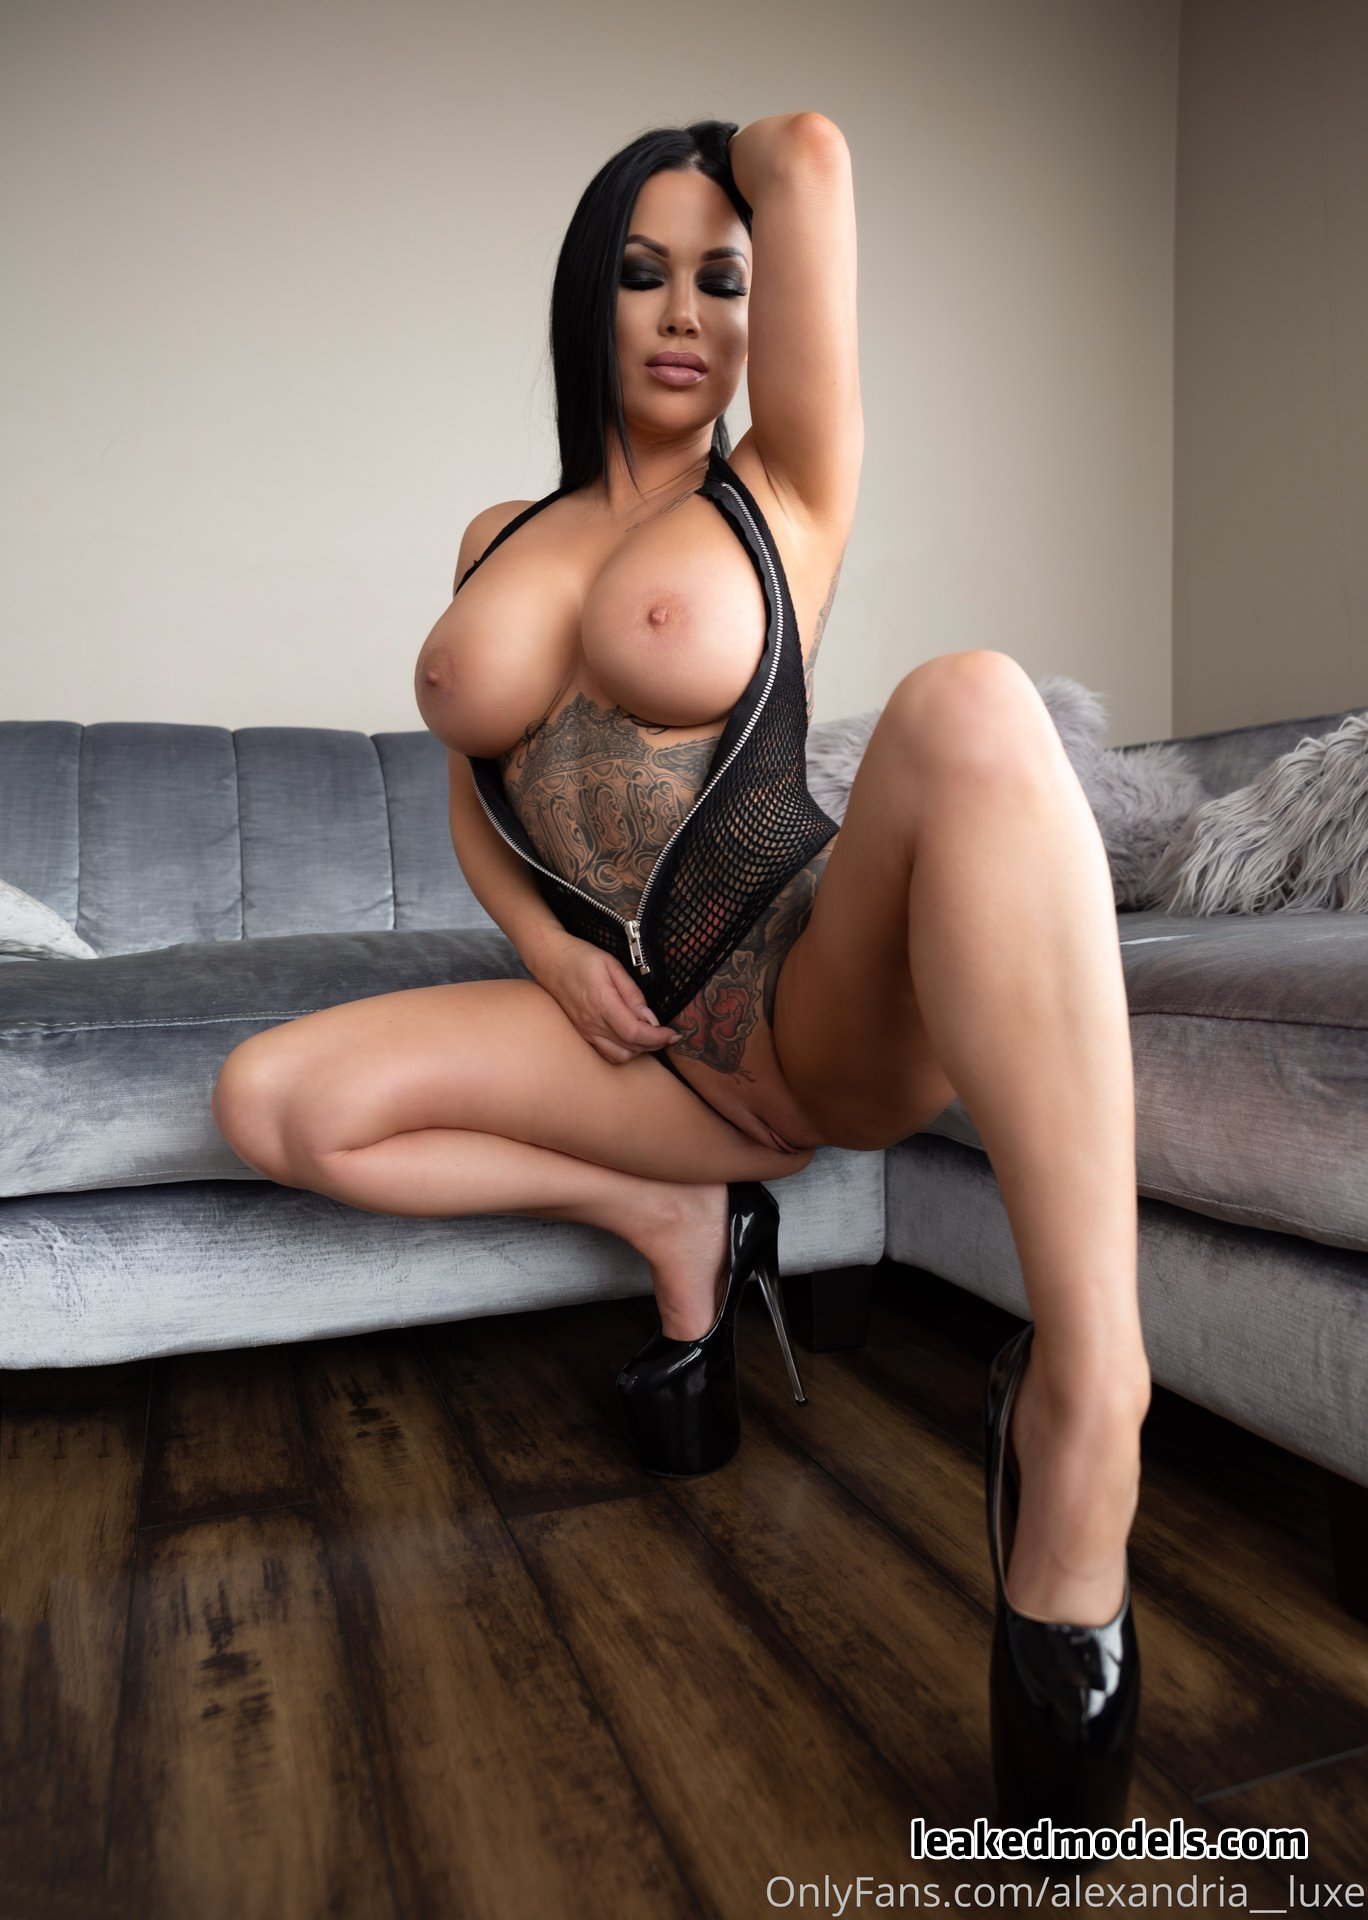 Alexandria_luxe OnlyFans Nude Leaks (35 Photos)